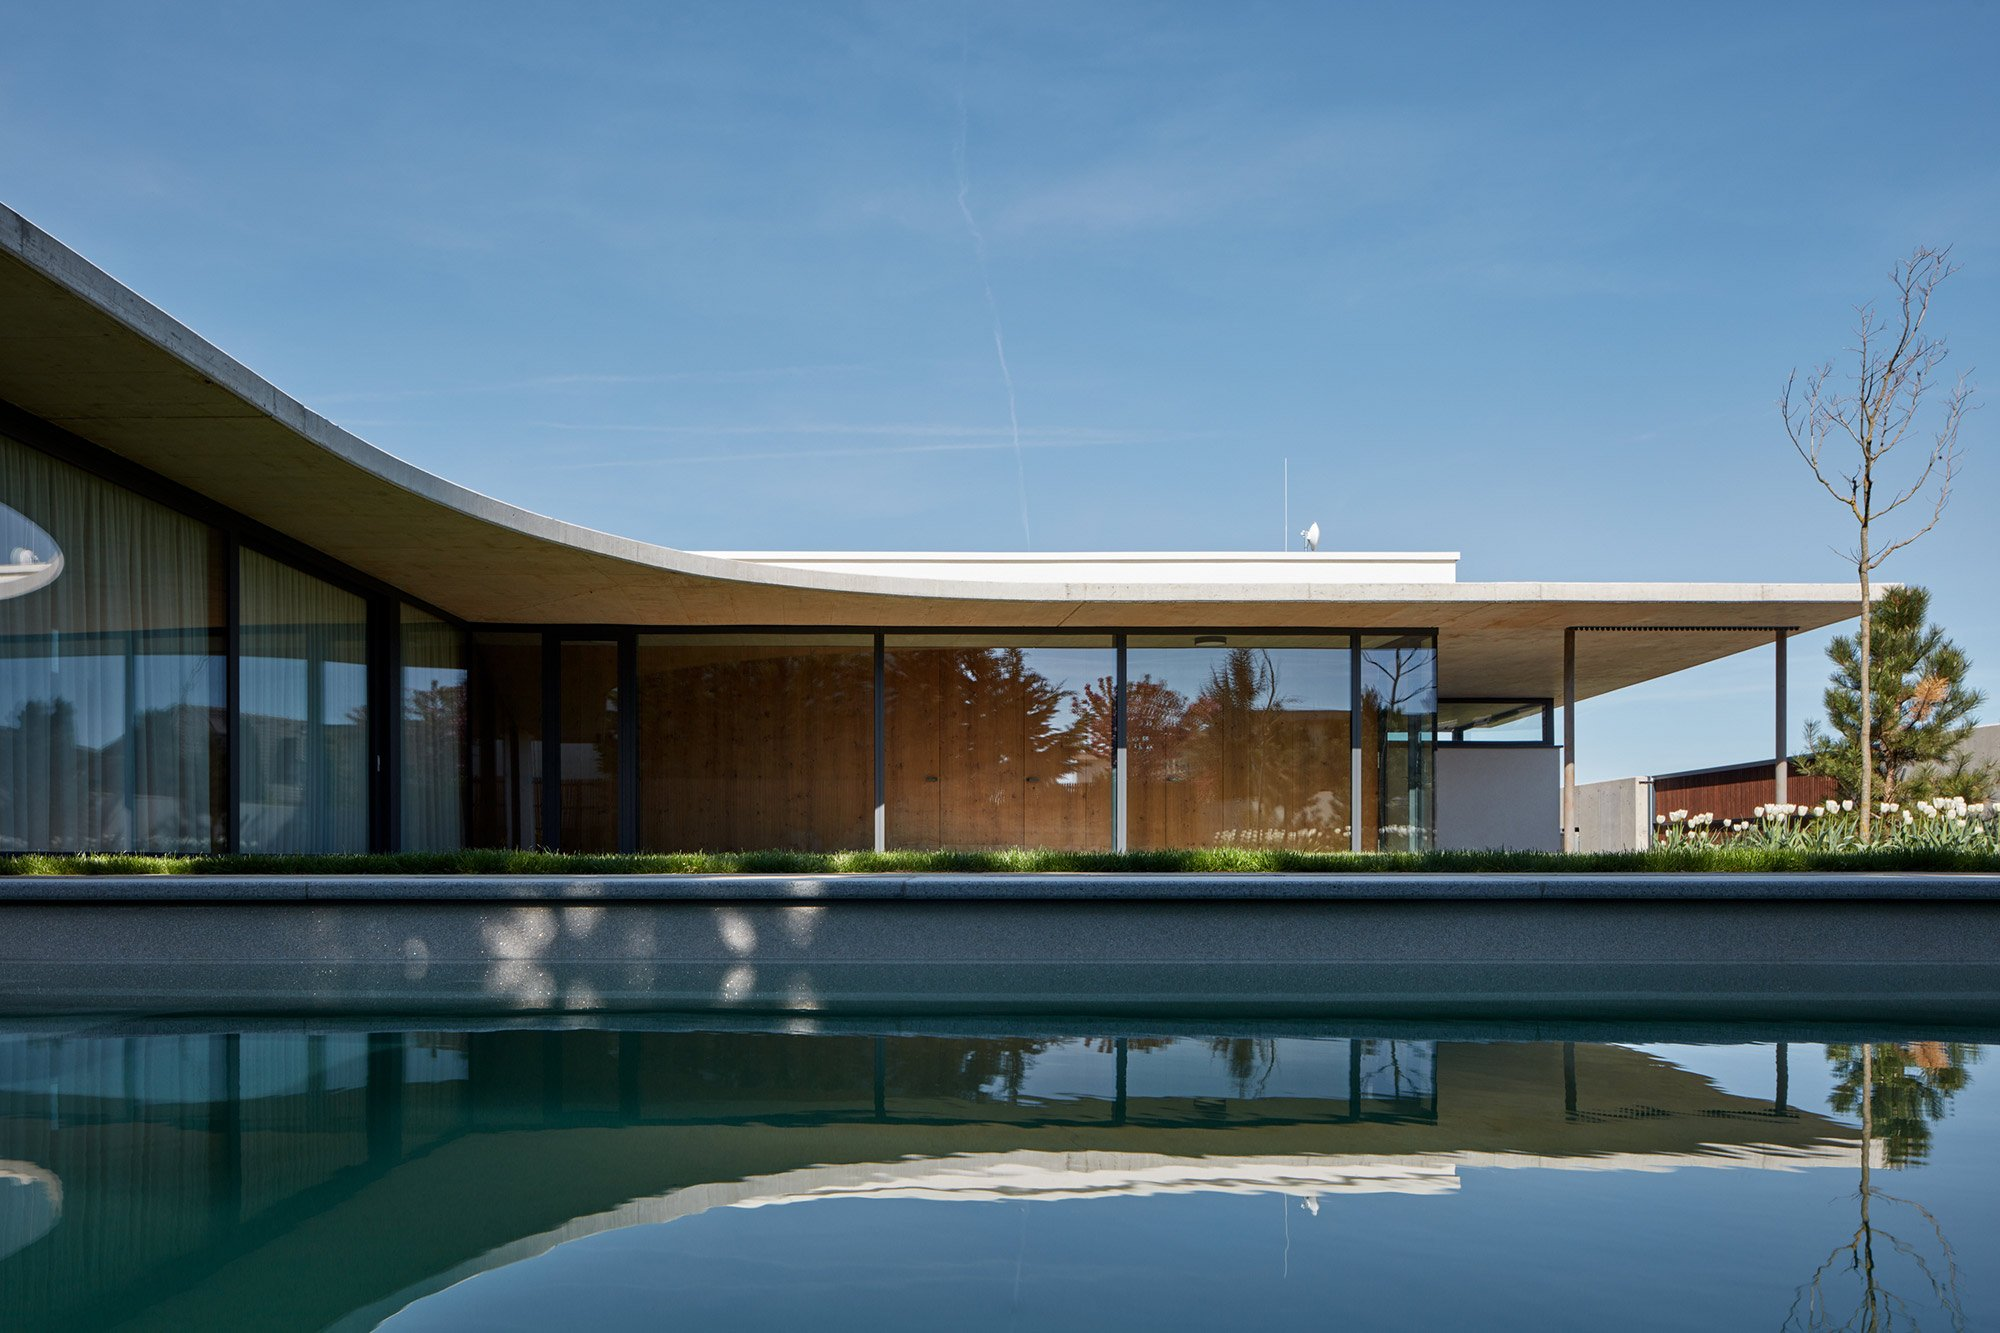 The Cantilevered Part Of The Roof Helps To Regulate The